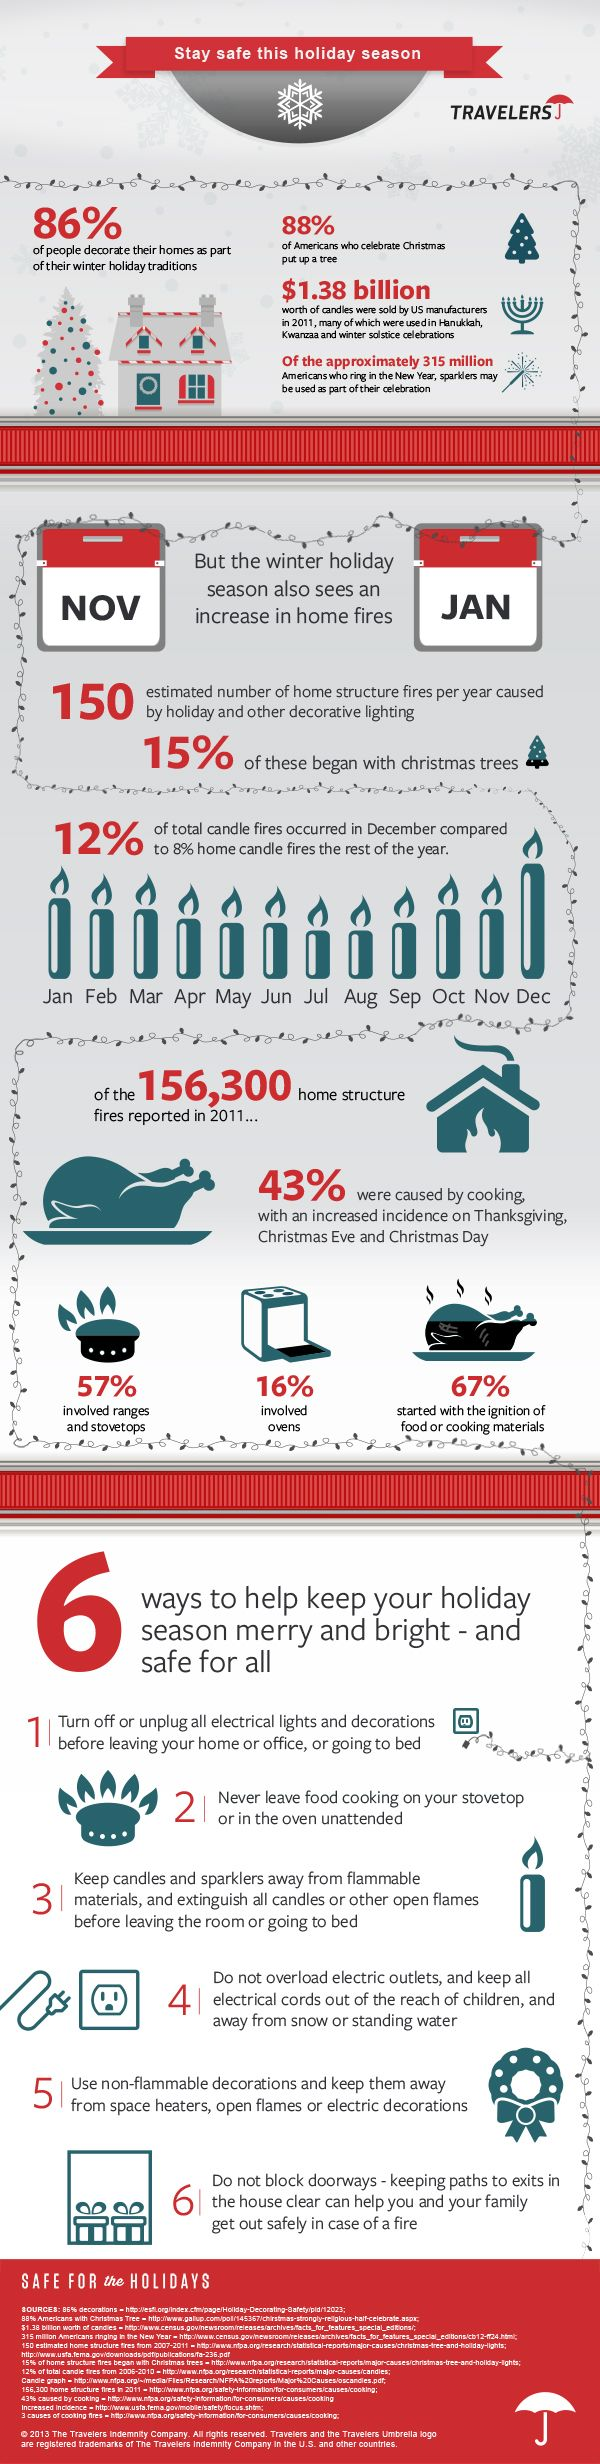 32 best holiday fun and preparedness images on pinterest holiday